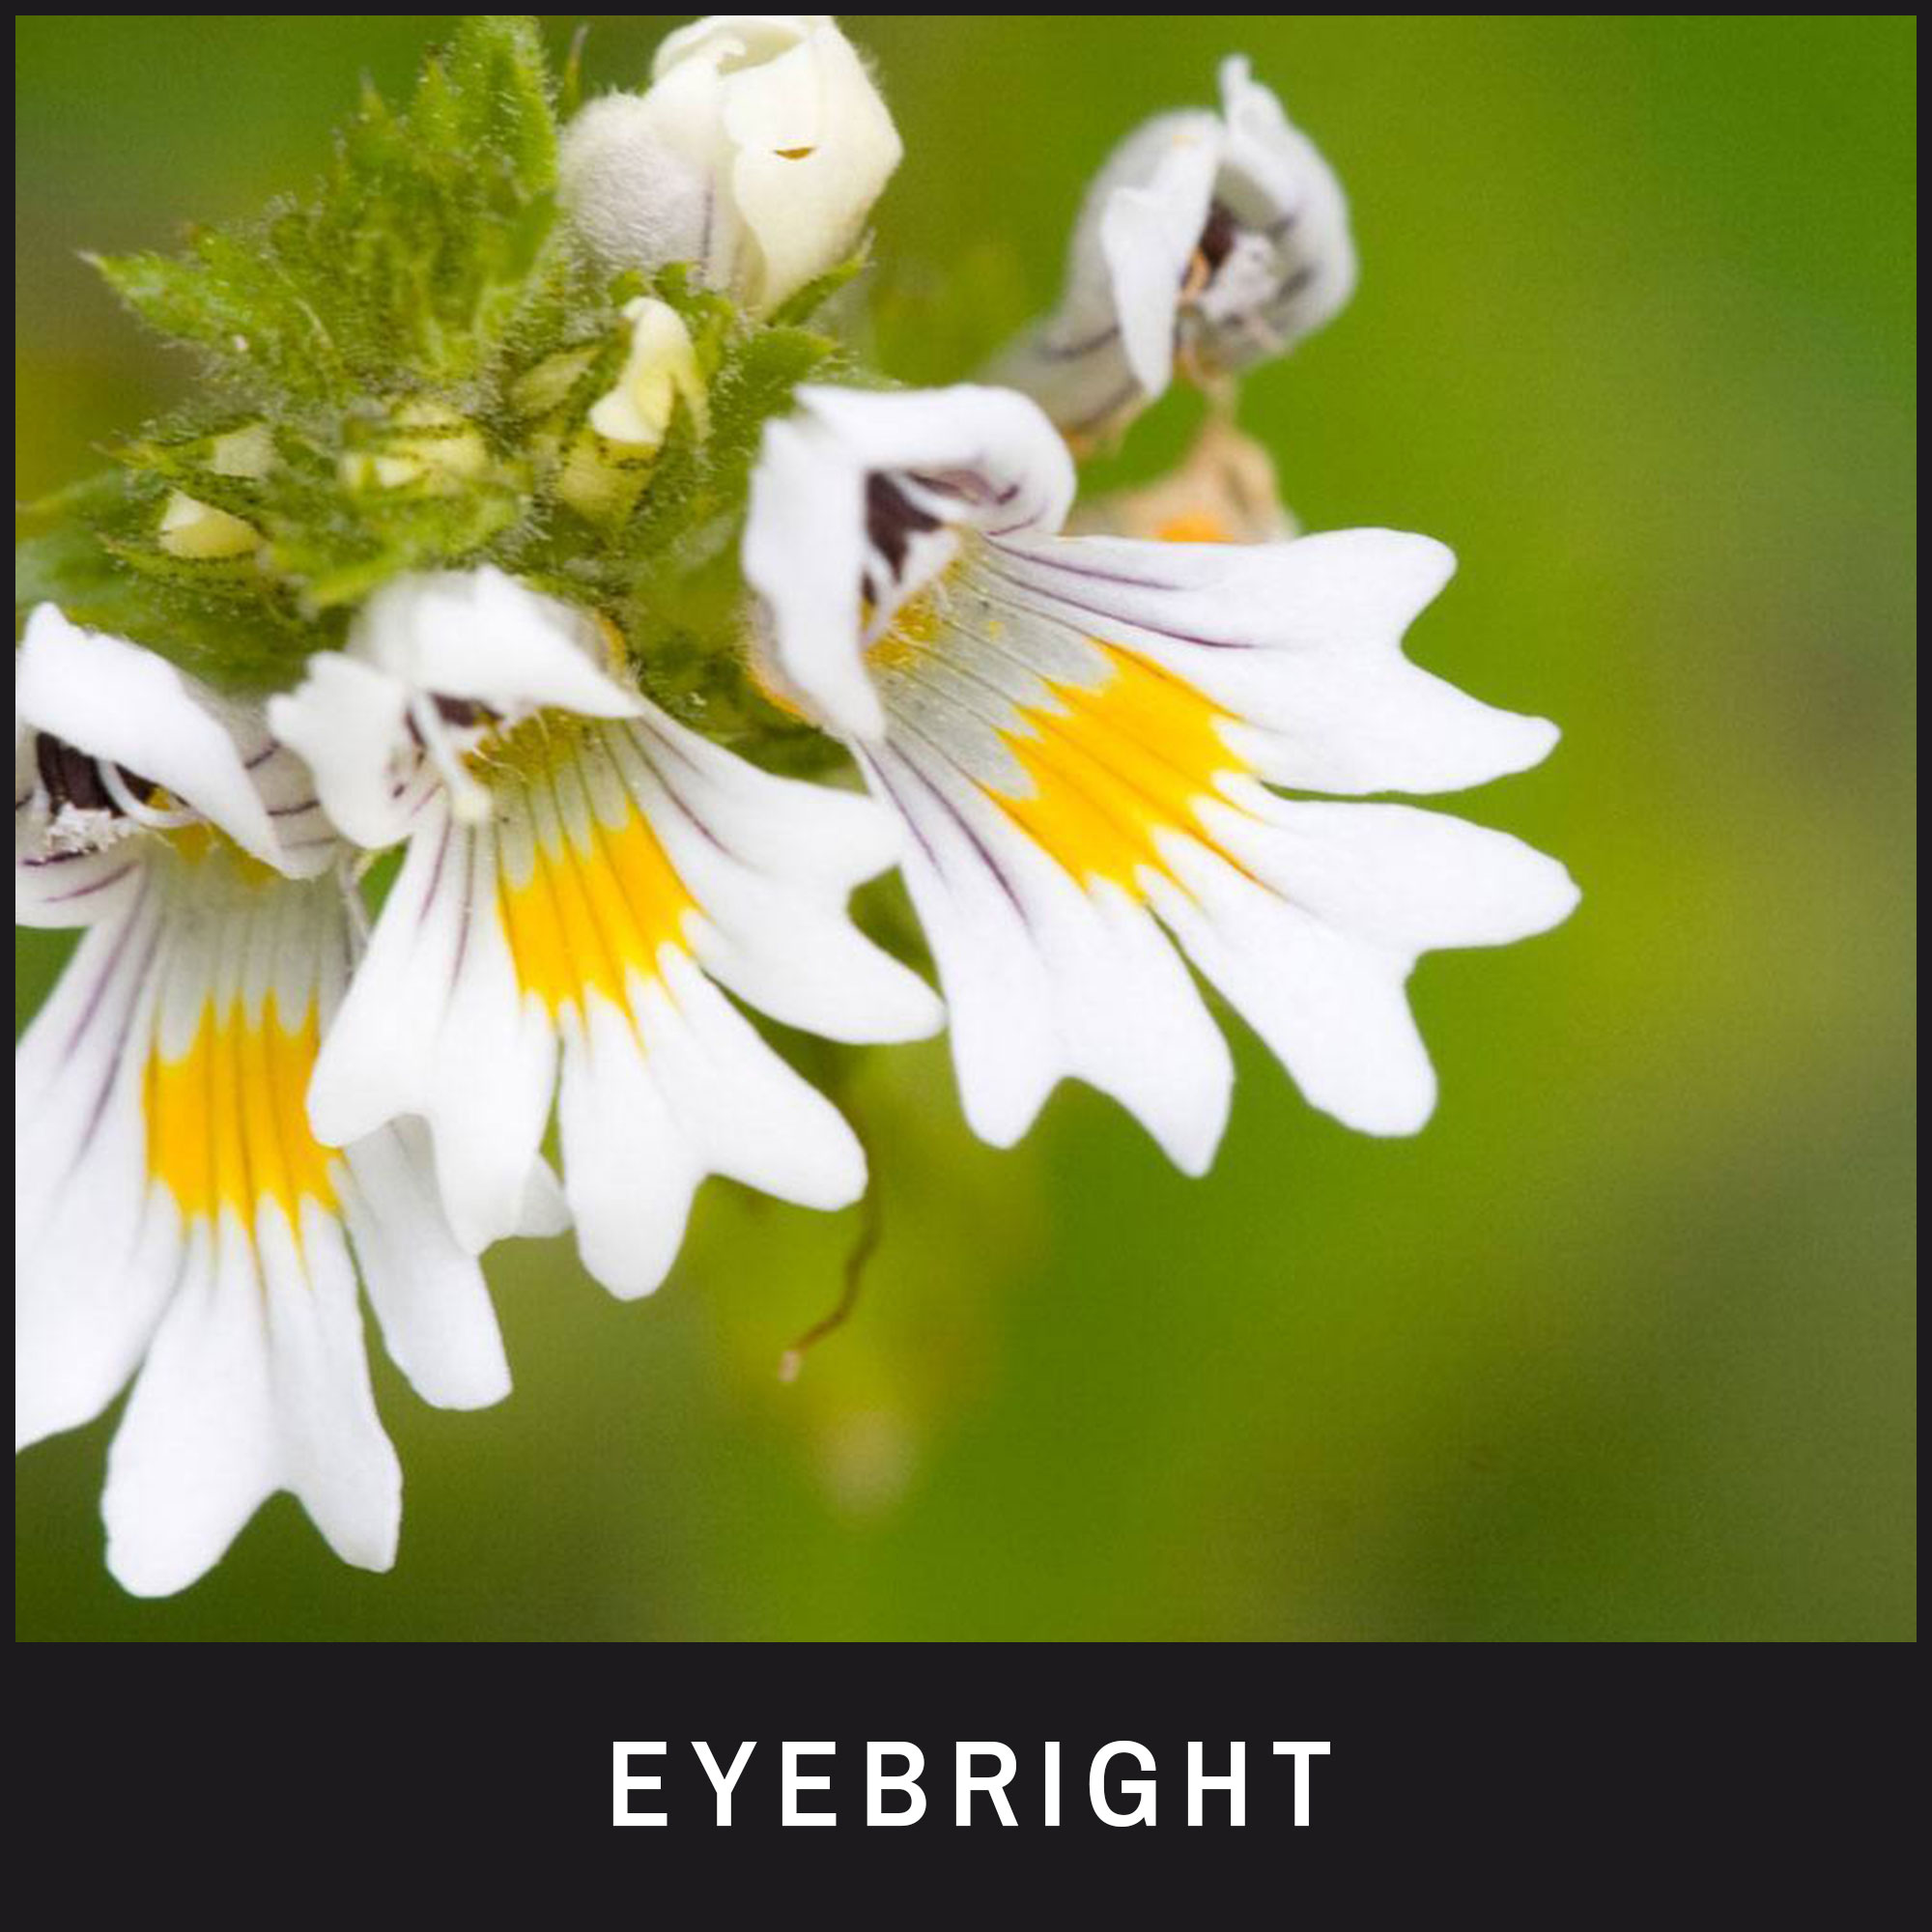 Eyebright treats infected, inflamed and irritated eyes